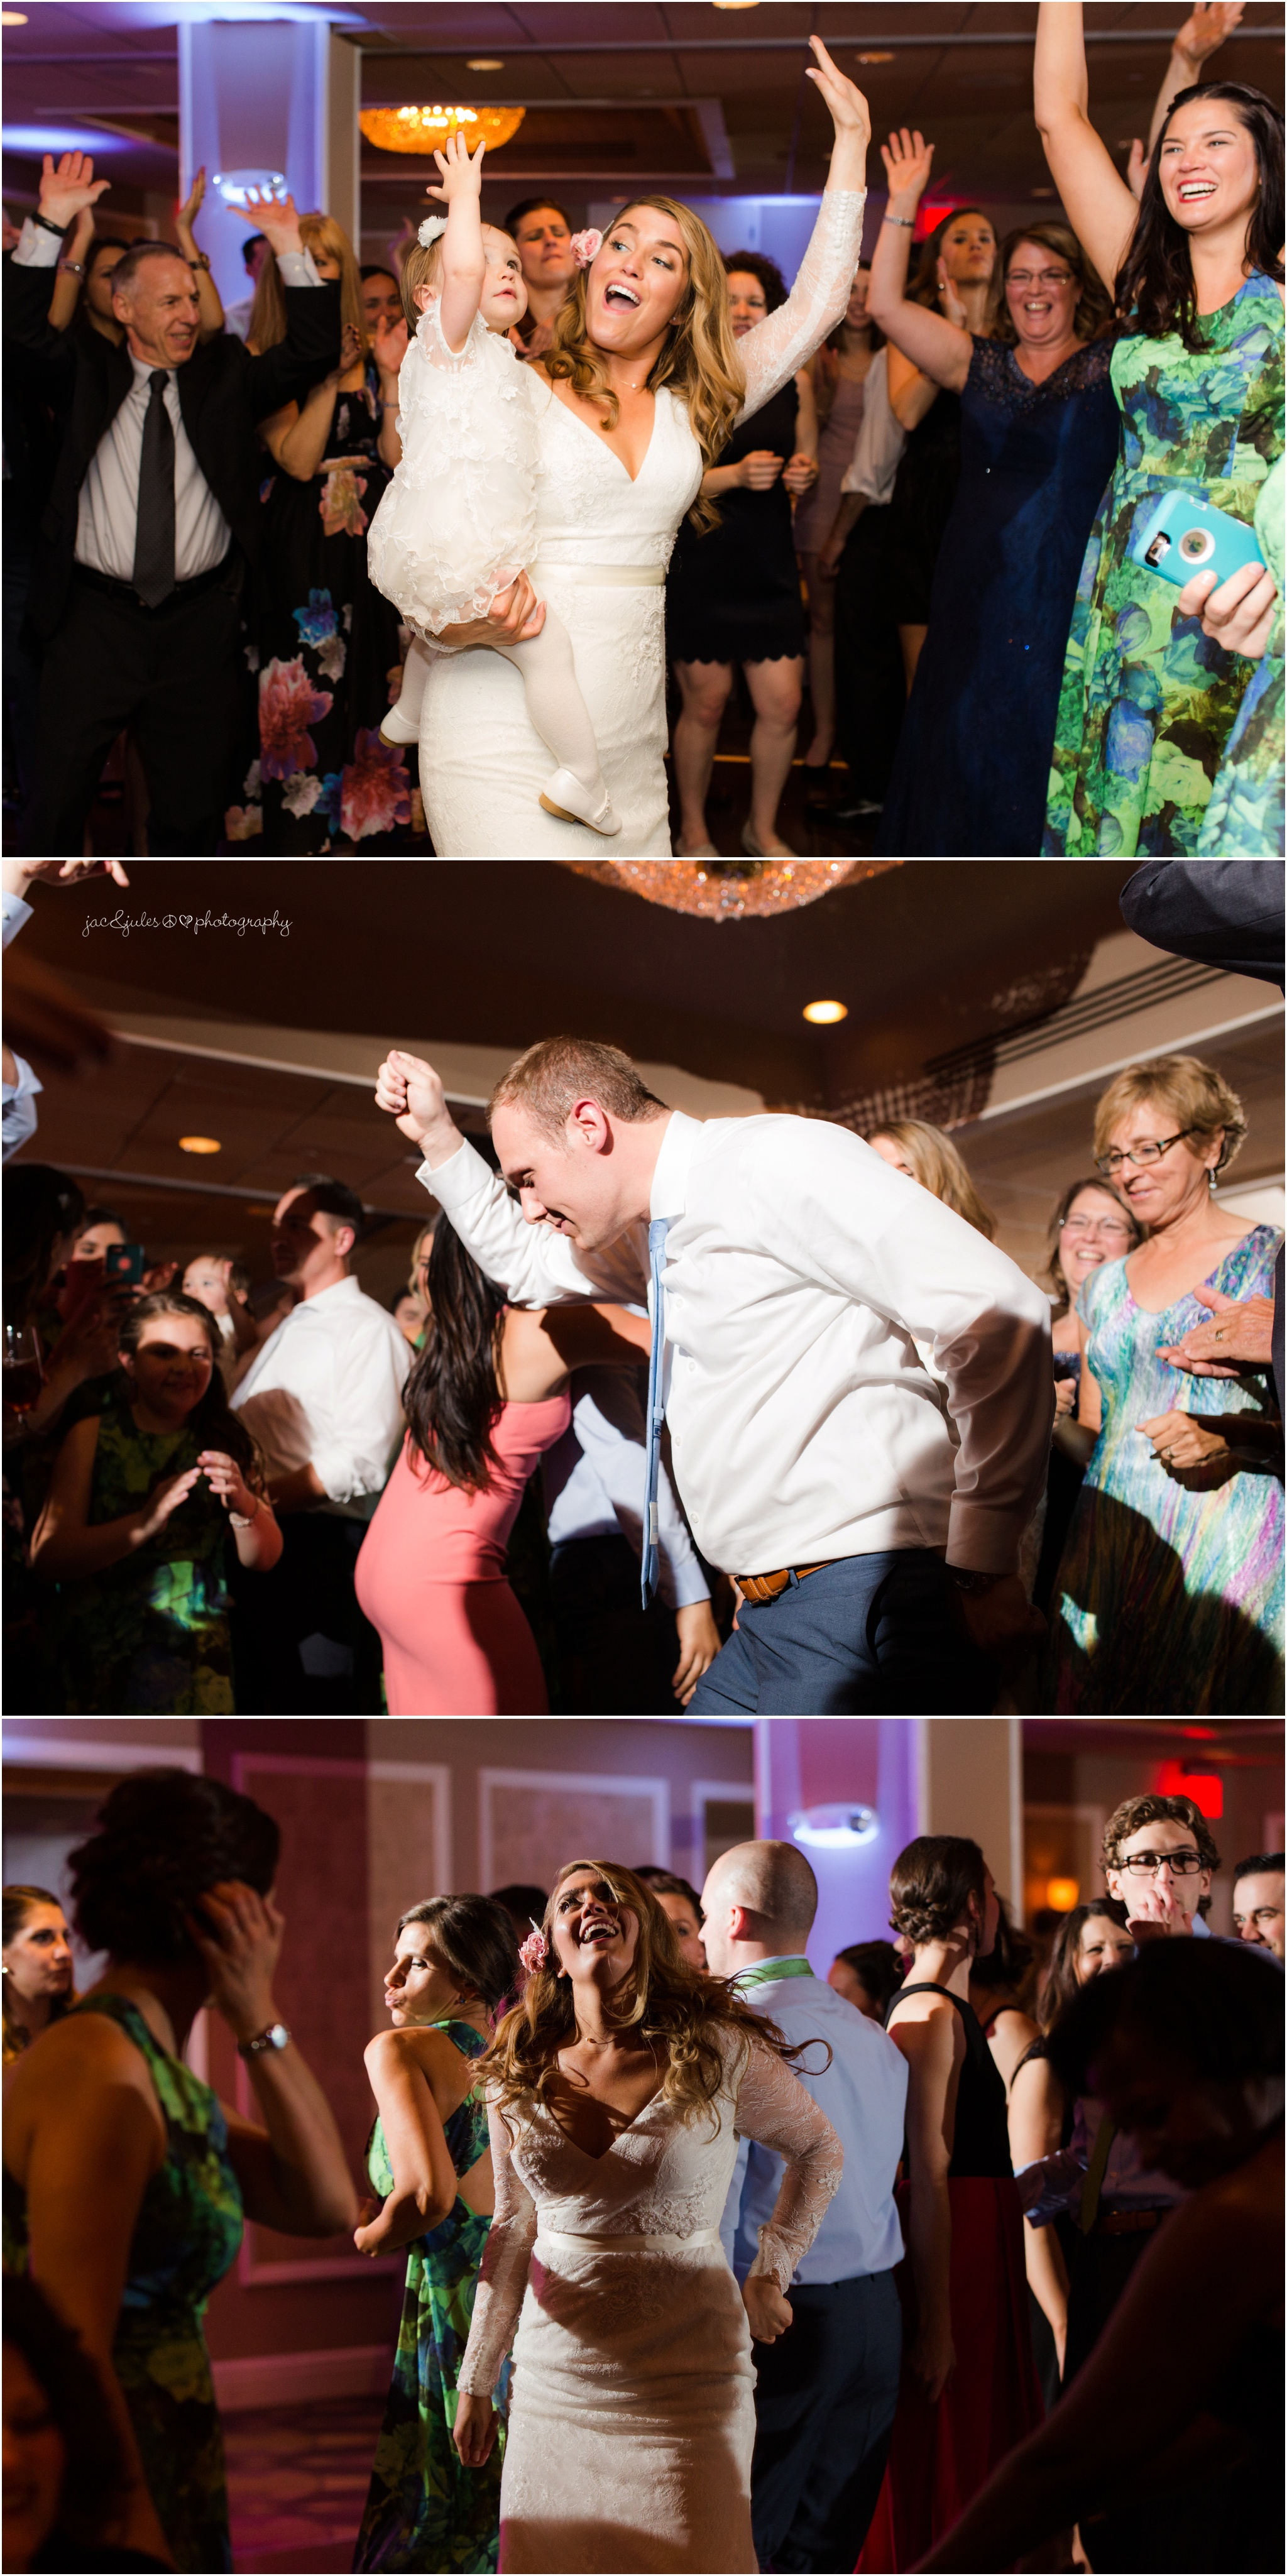 fun dancing photos from wedding at oyster point hotel in redbank, nj.